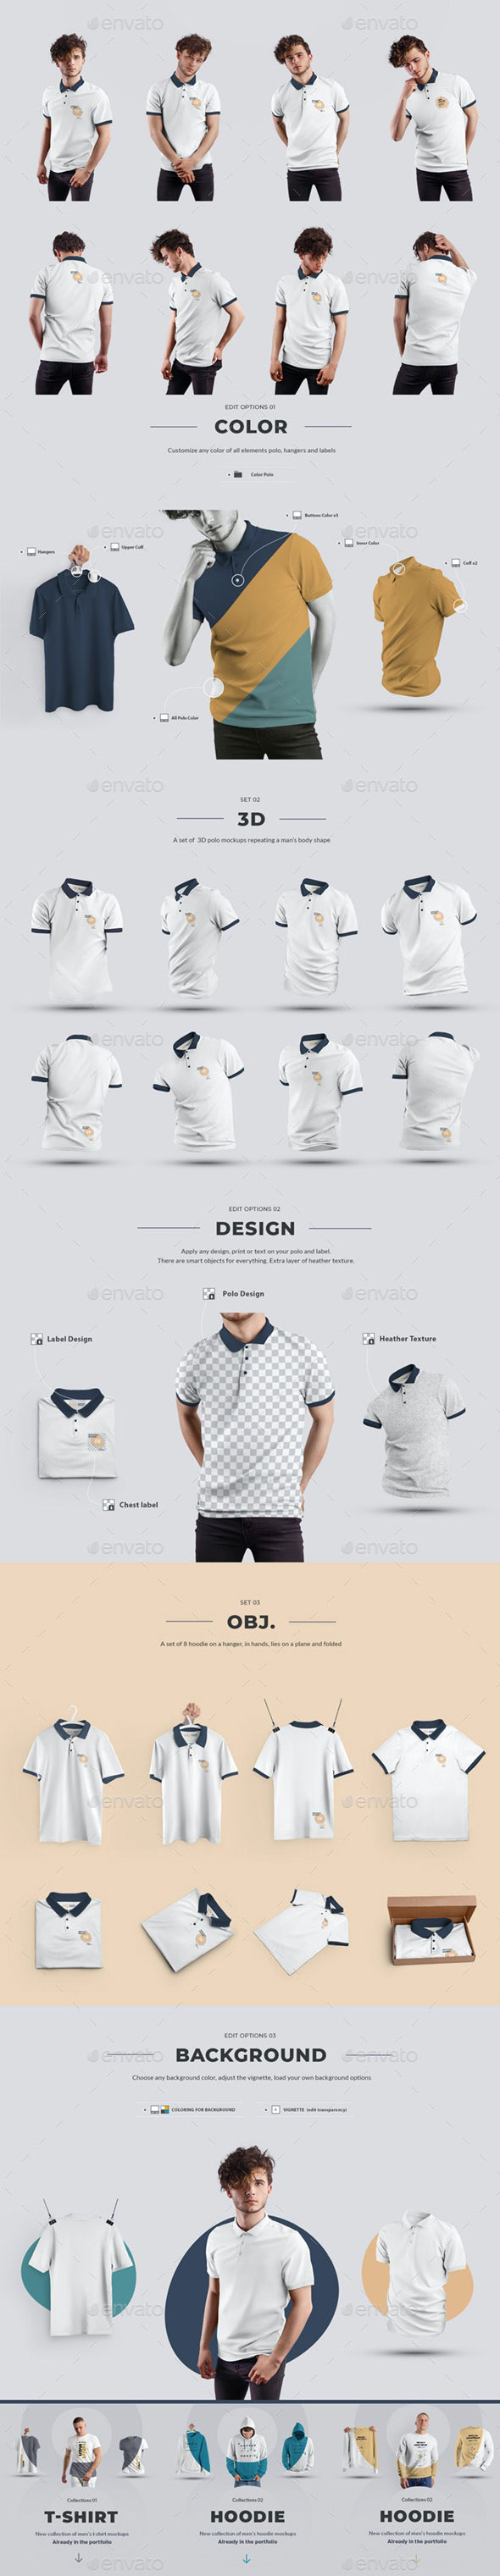 24 Polo Men Mockup Man3D Objects Collection 4 29362775 Free